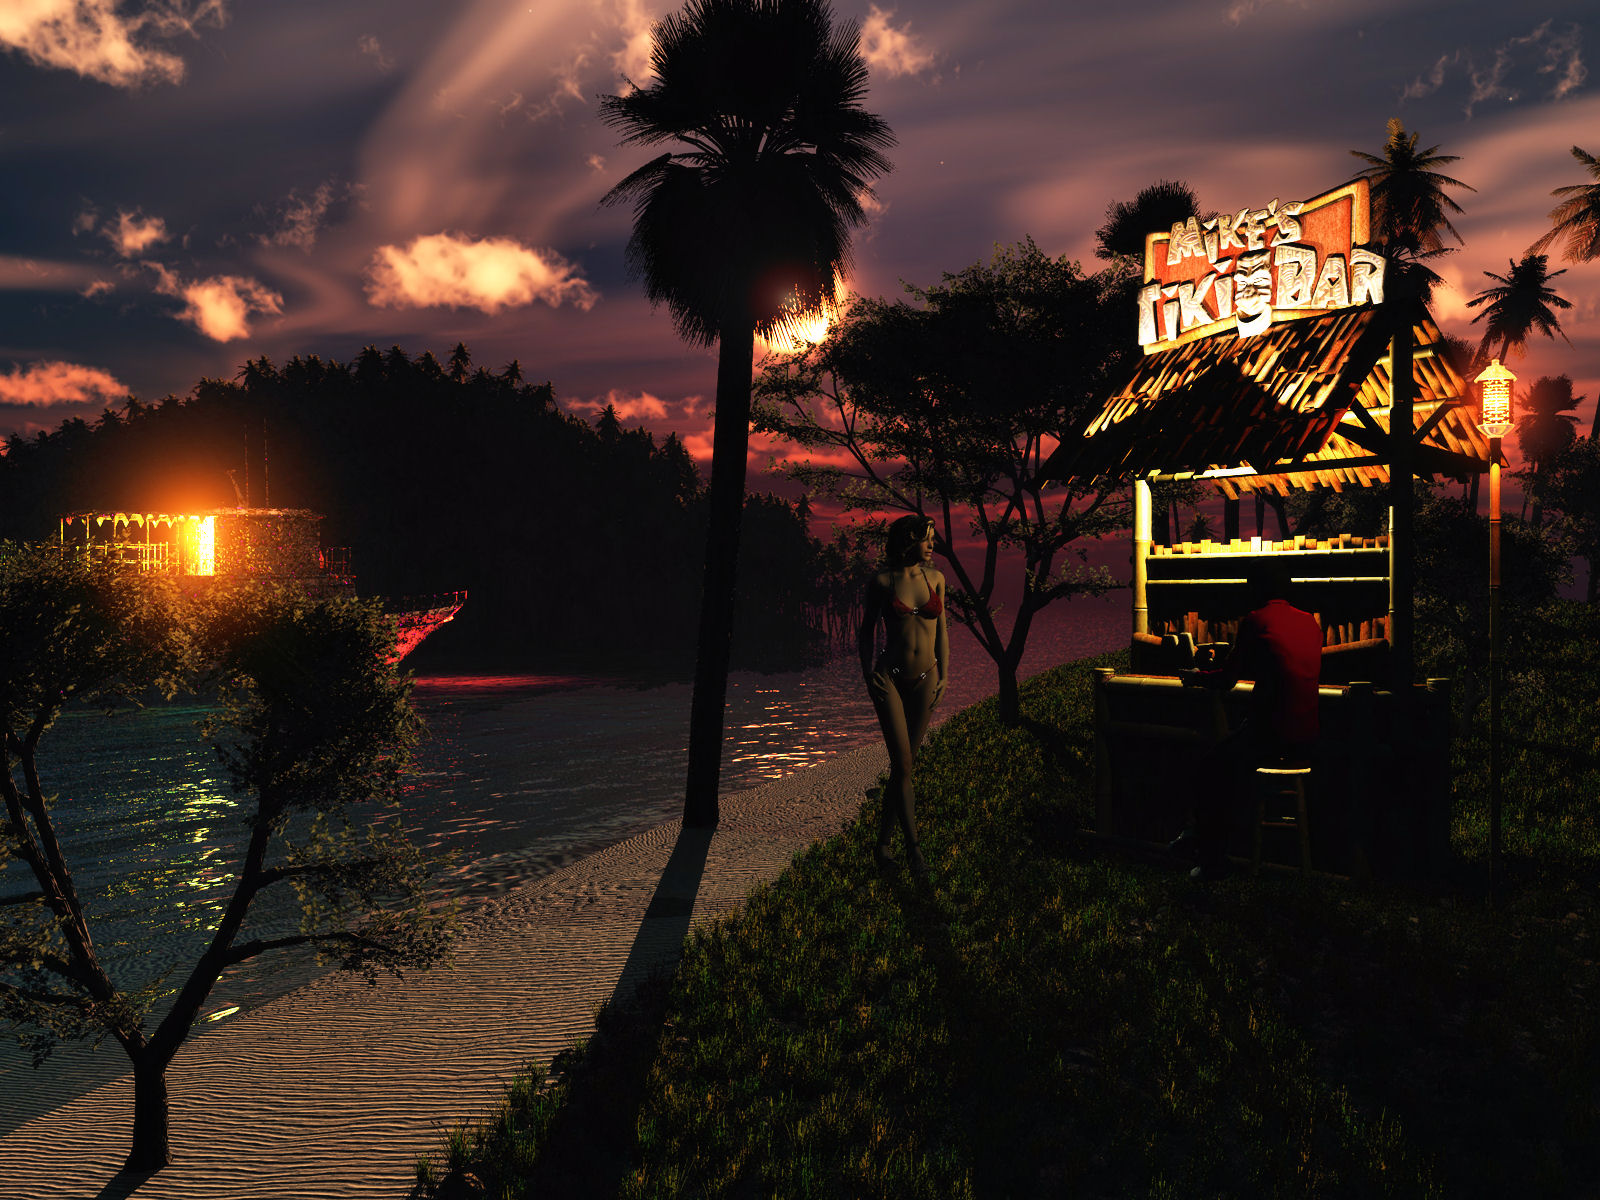 Another Night at Mike's Tiki Bar